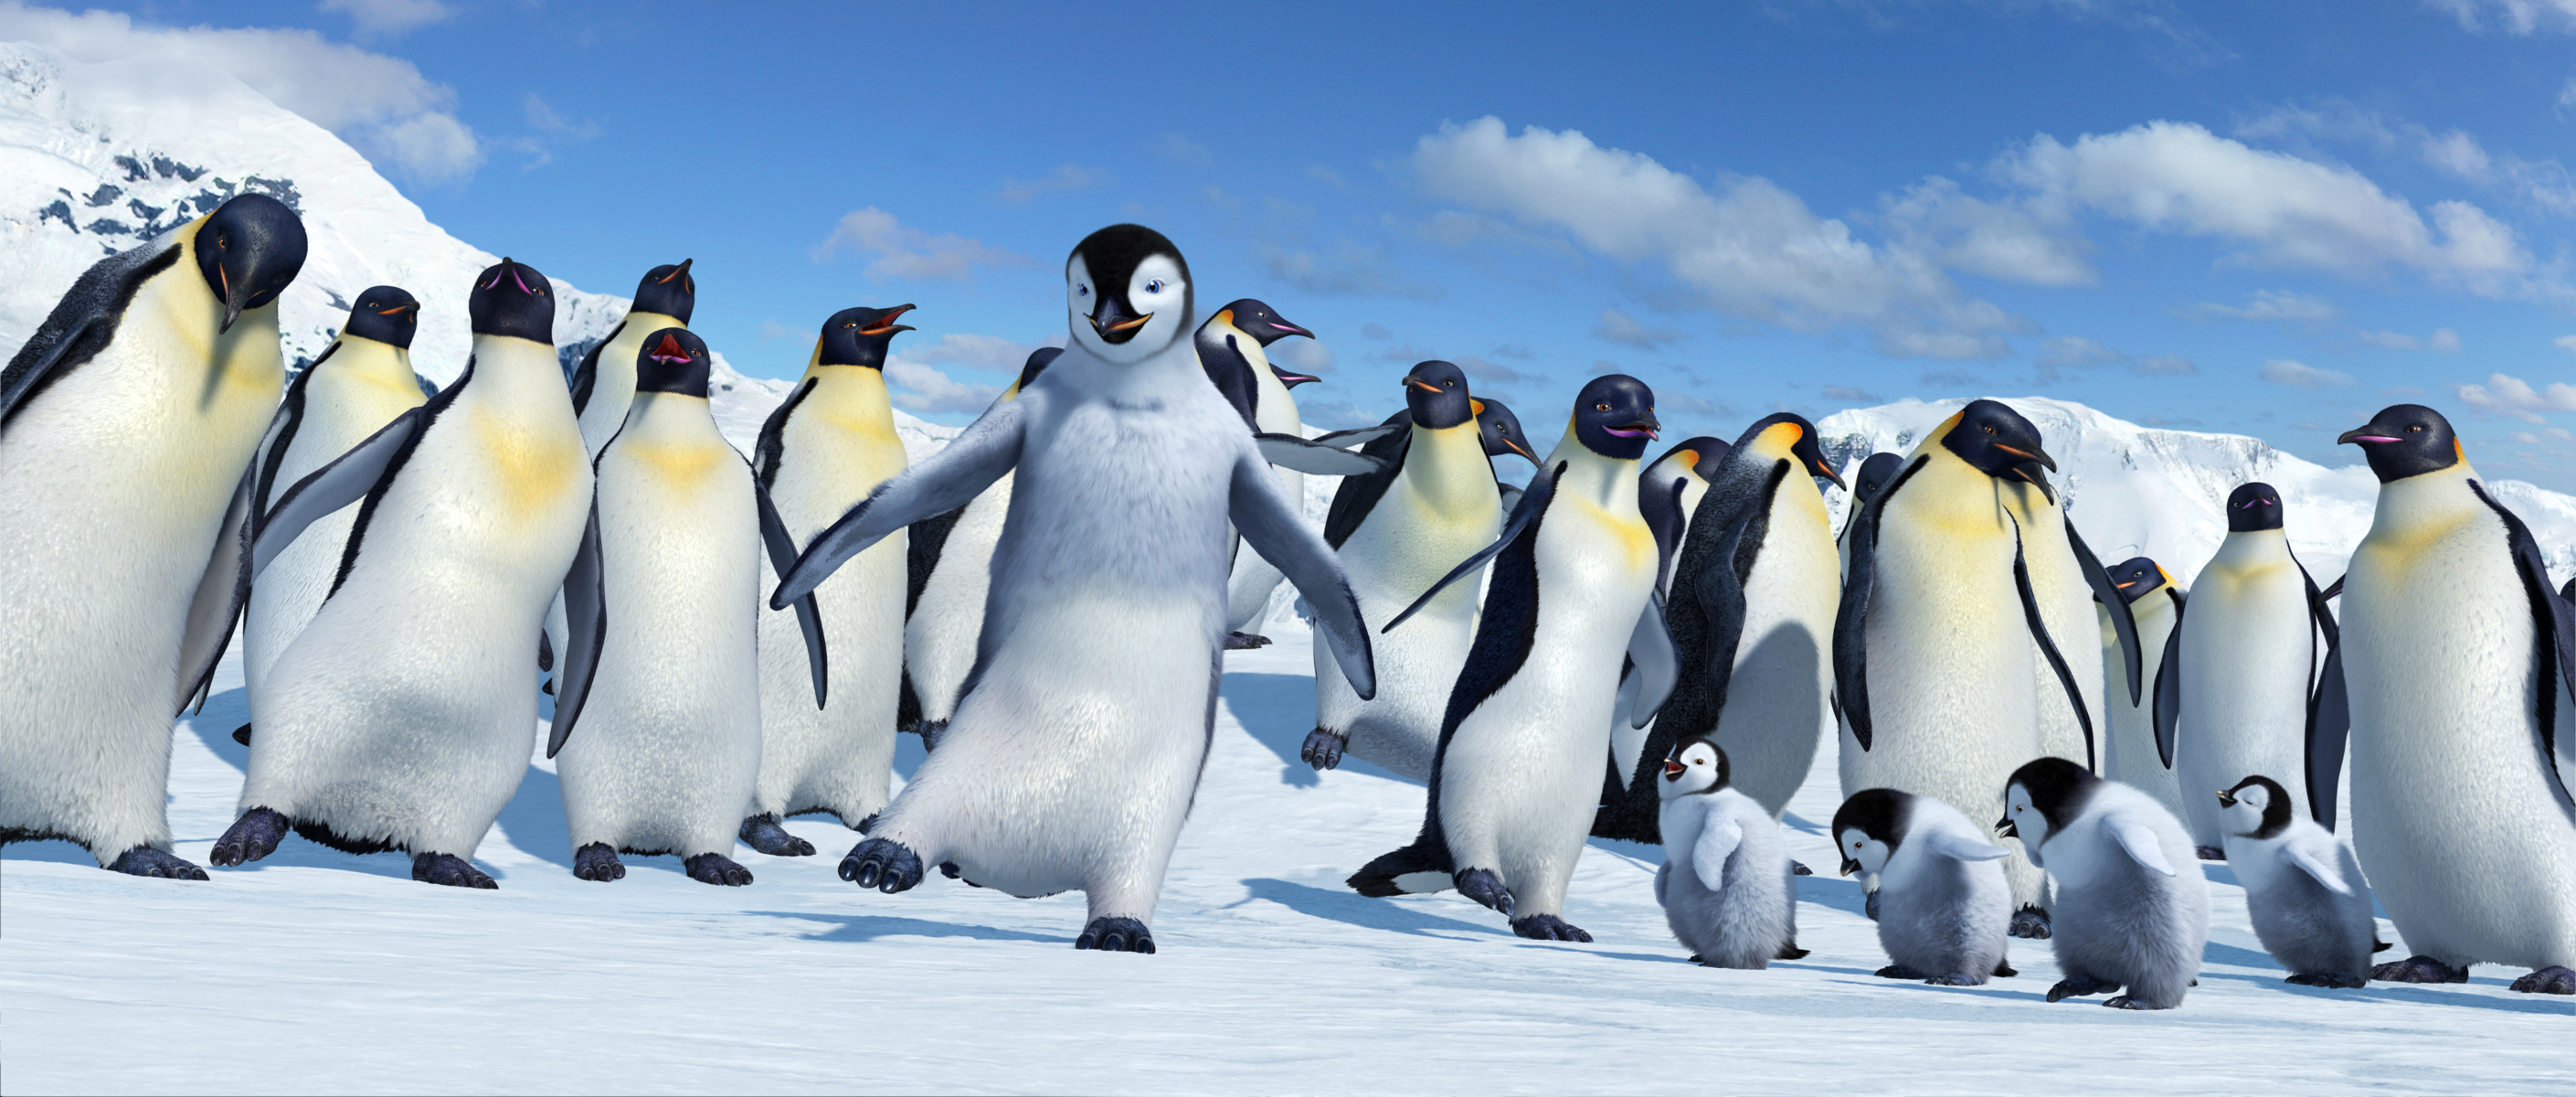 8 HAPPY FEET Wallpapers | HAPPY FEET Backgrounds